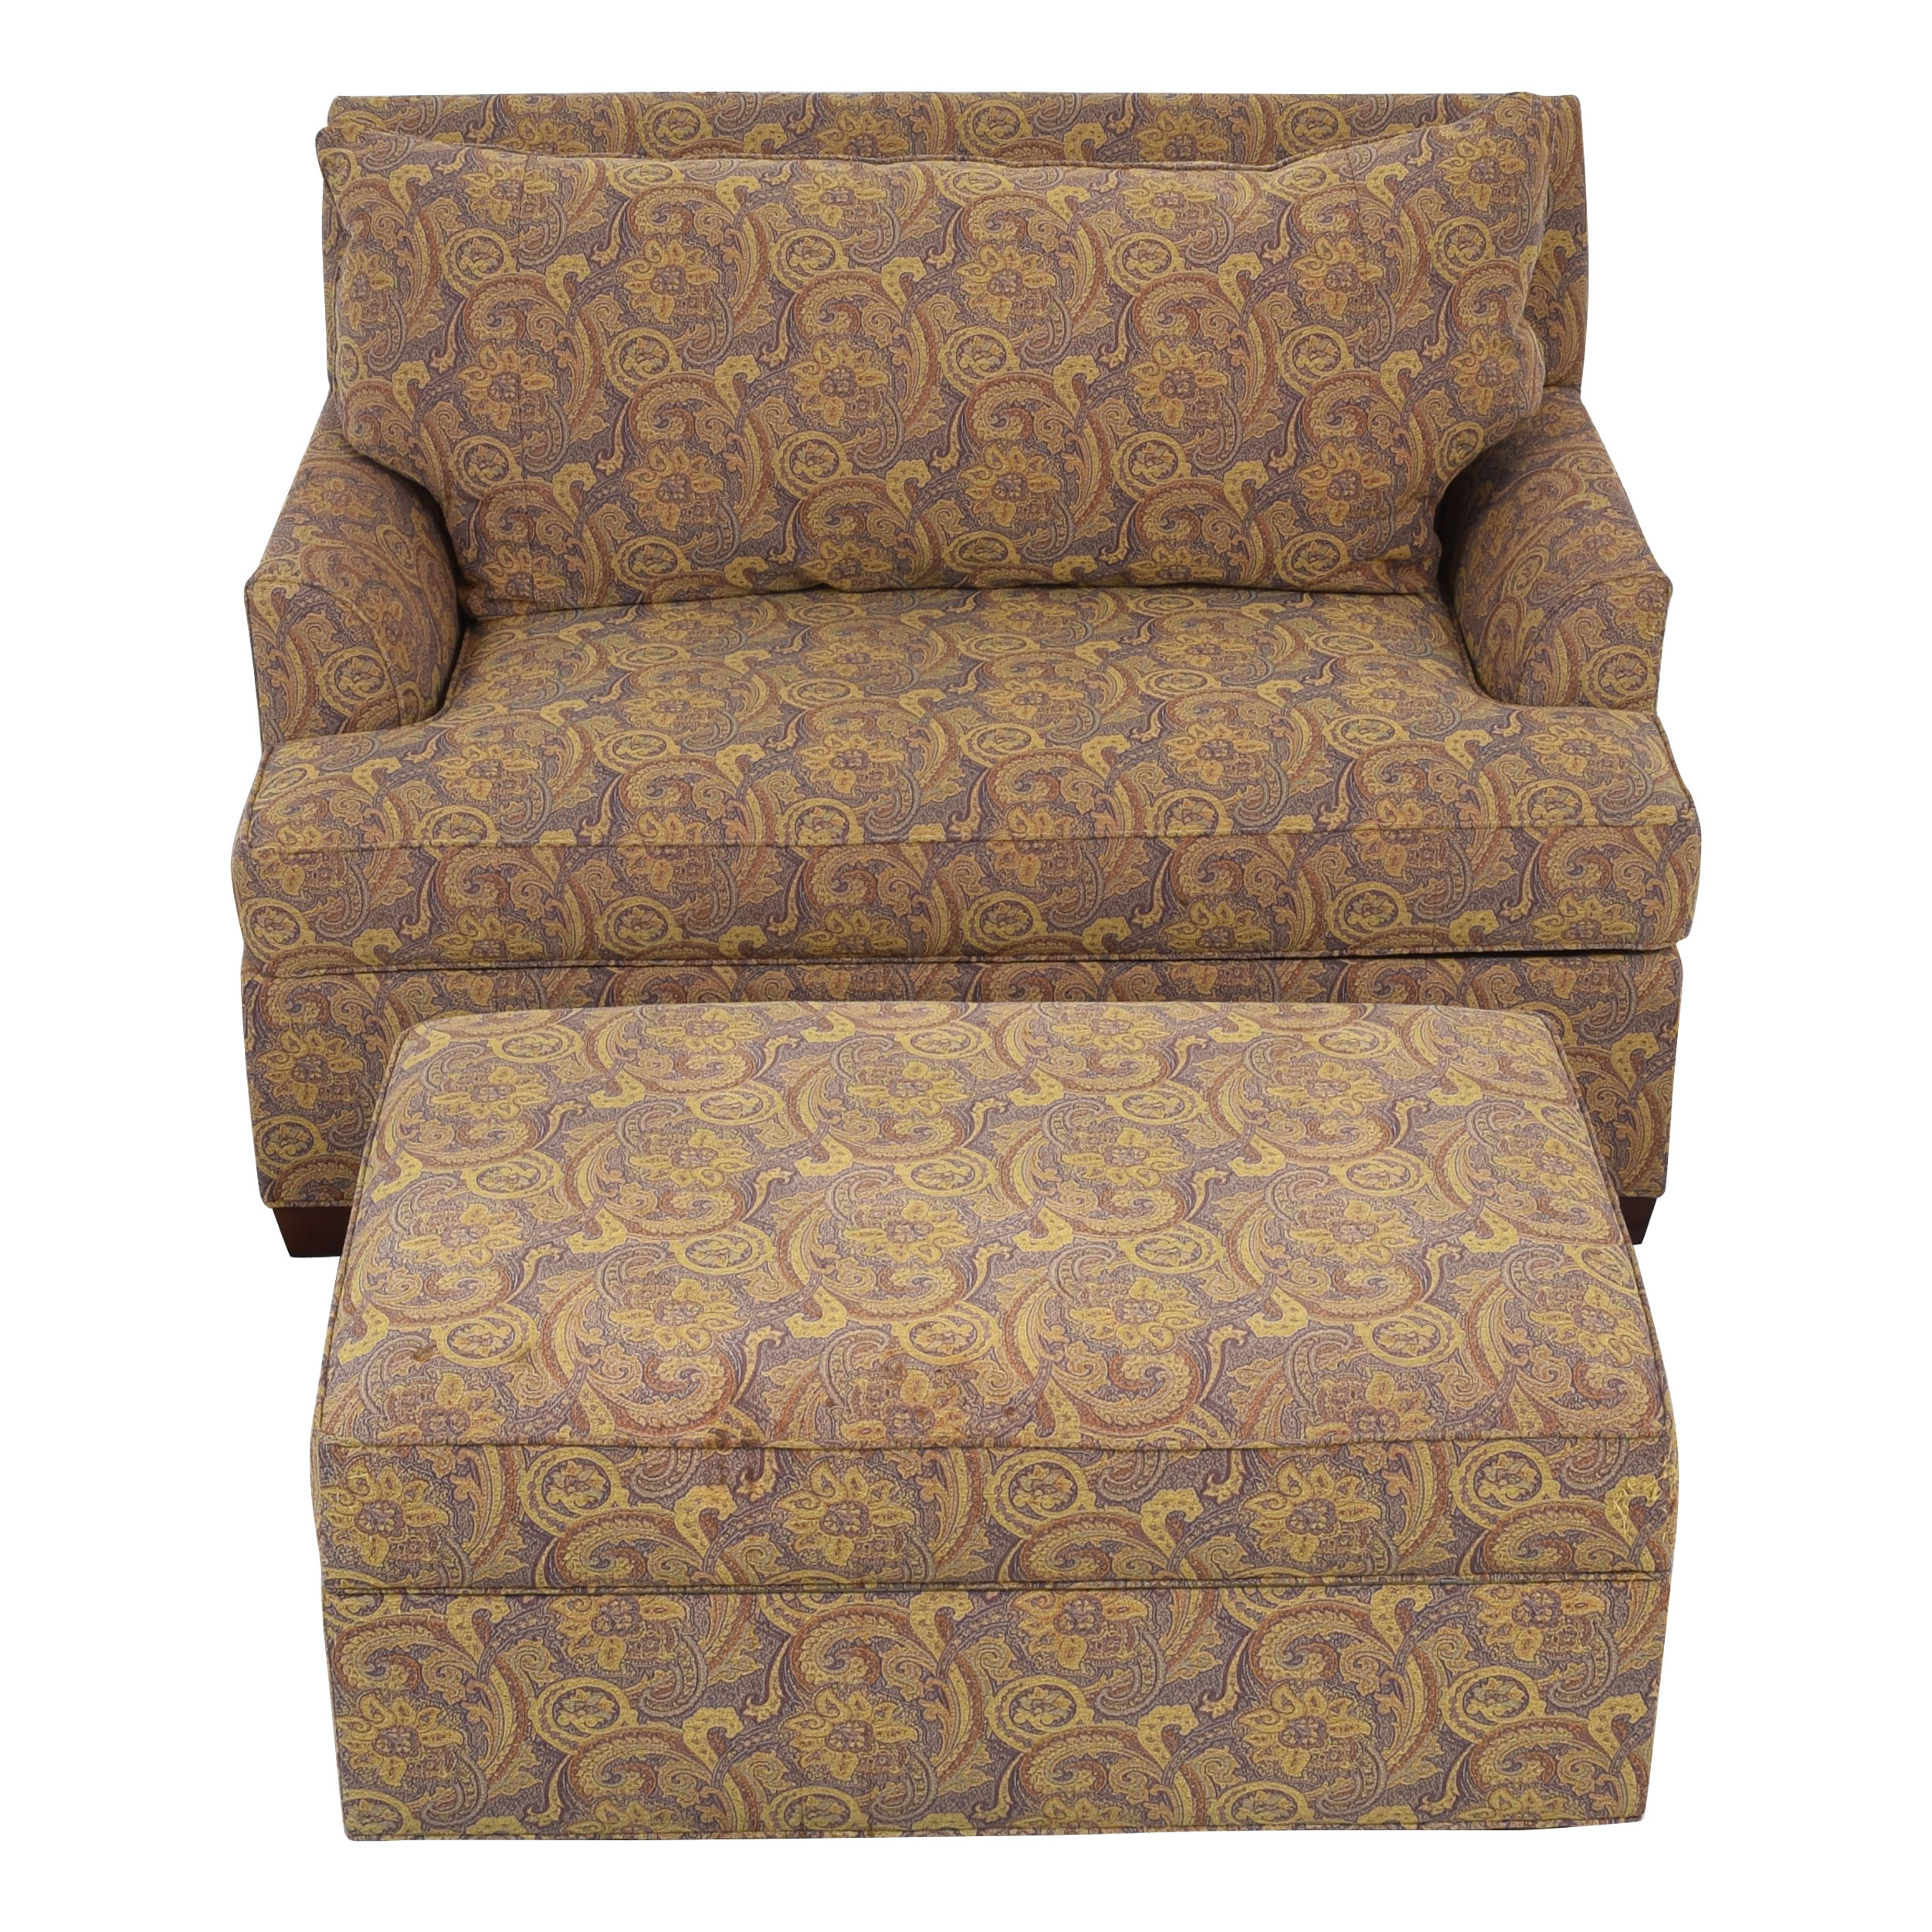 Ethan Allen Ethan Allen Marina Chair and a Half Twin Sleeper with Ottoman pa